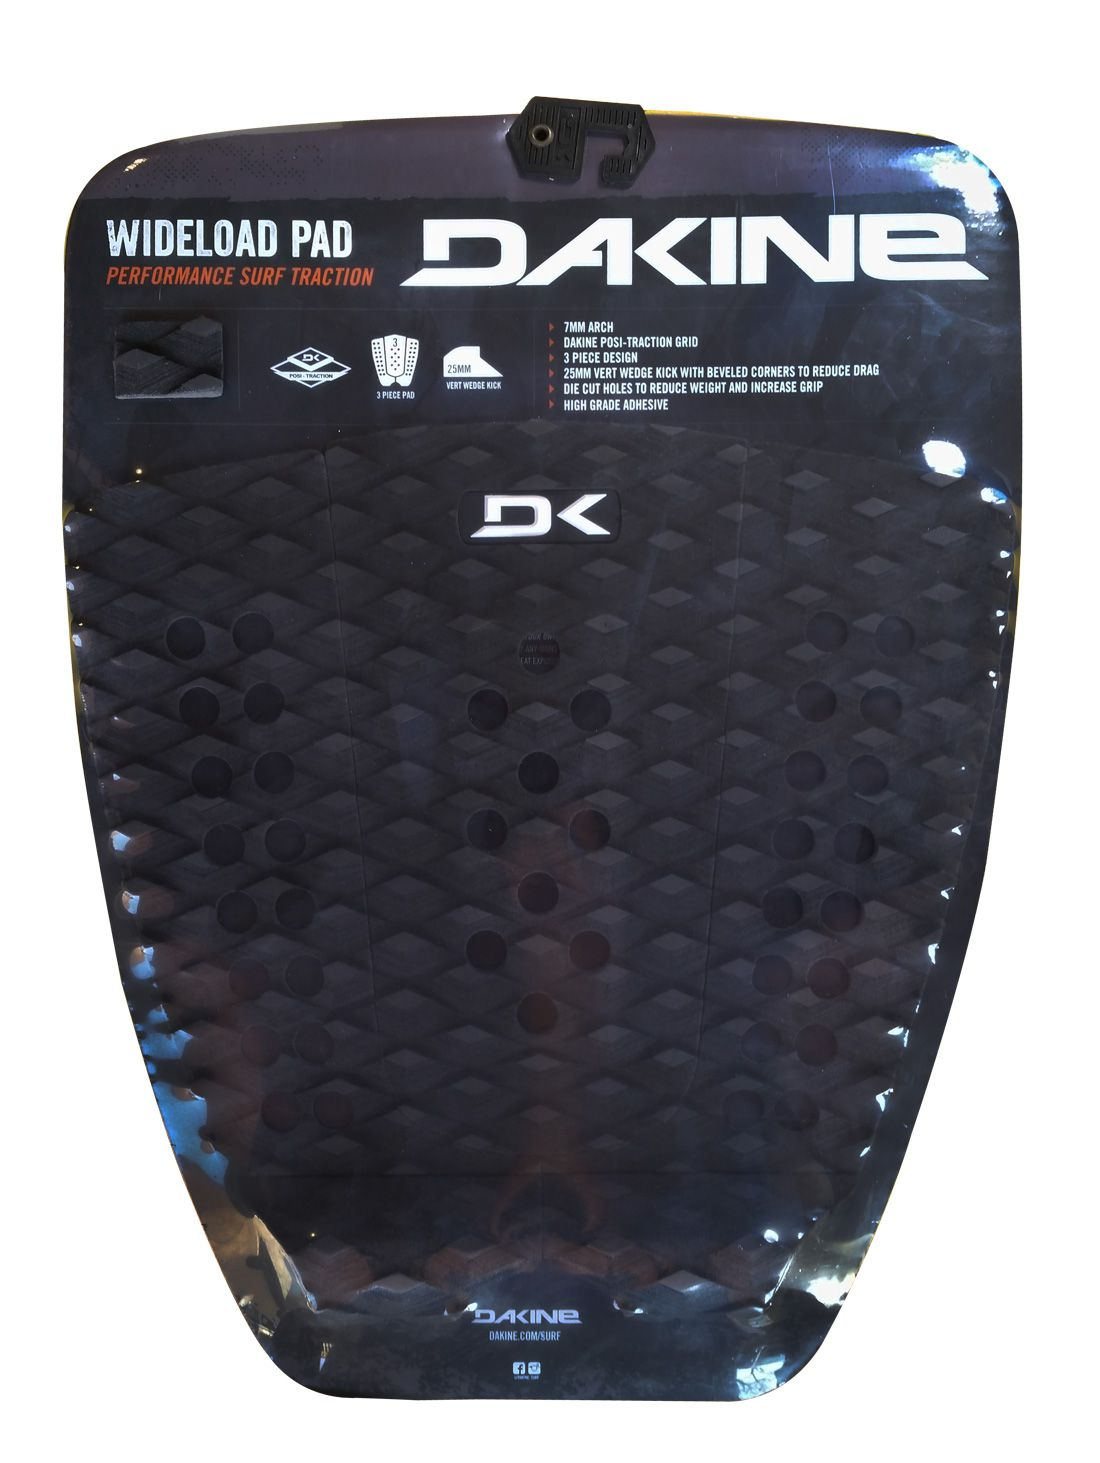 Deck Dakine Wideload Pad